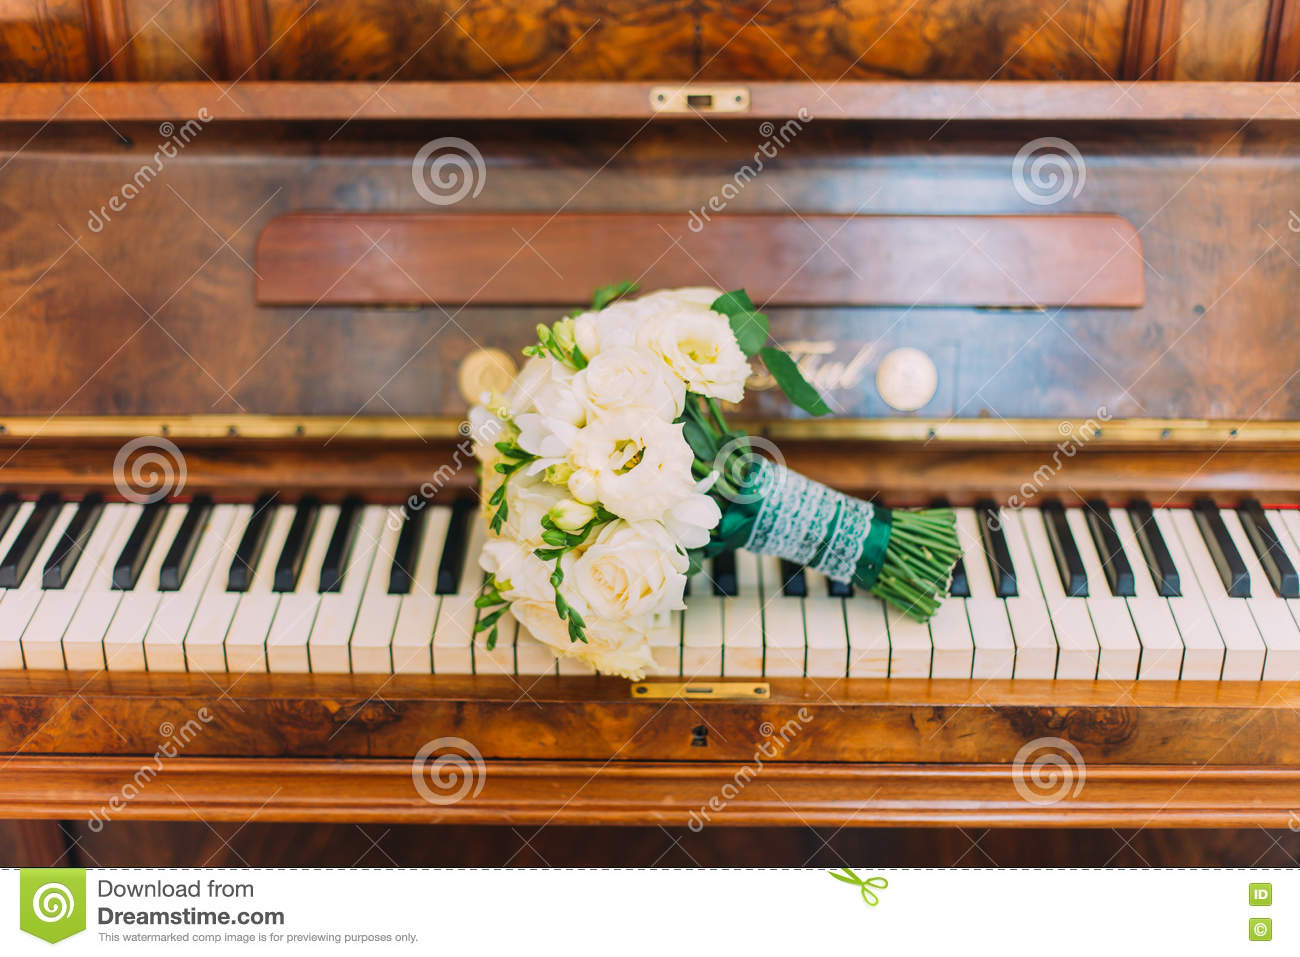 Cute Bridal Bouquet Of White Roses On Piano Keyboard Stock ...